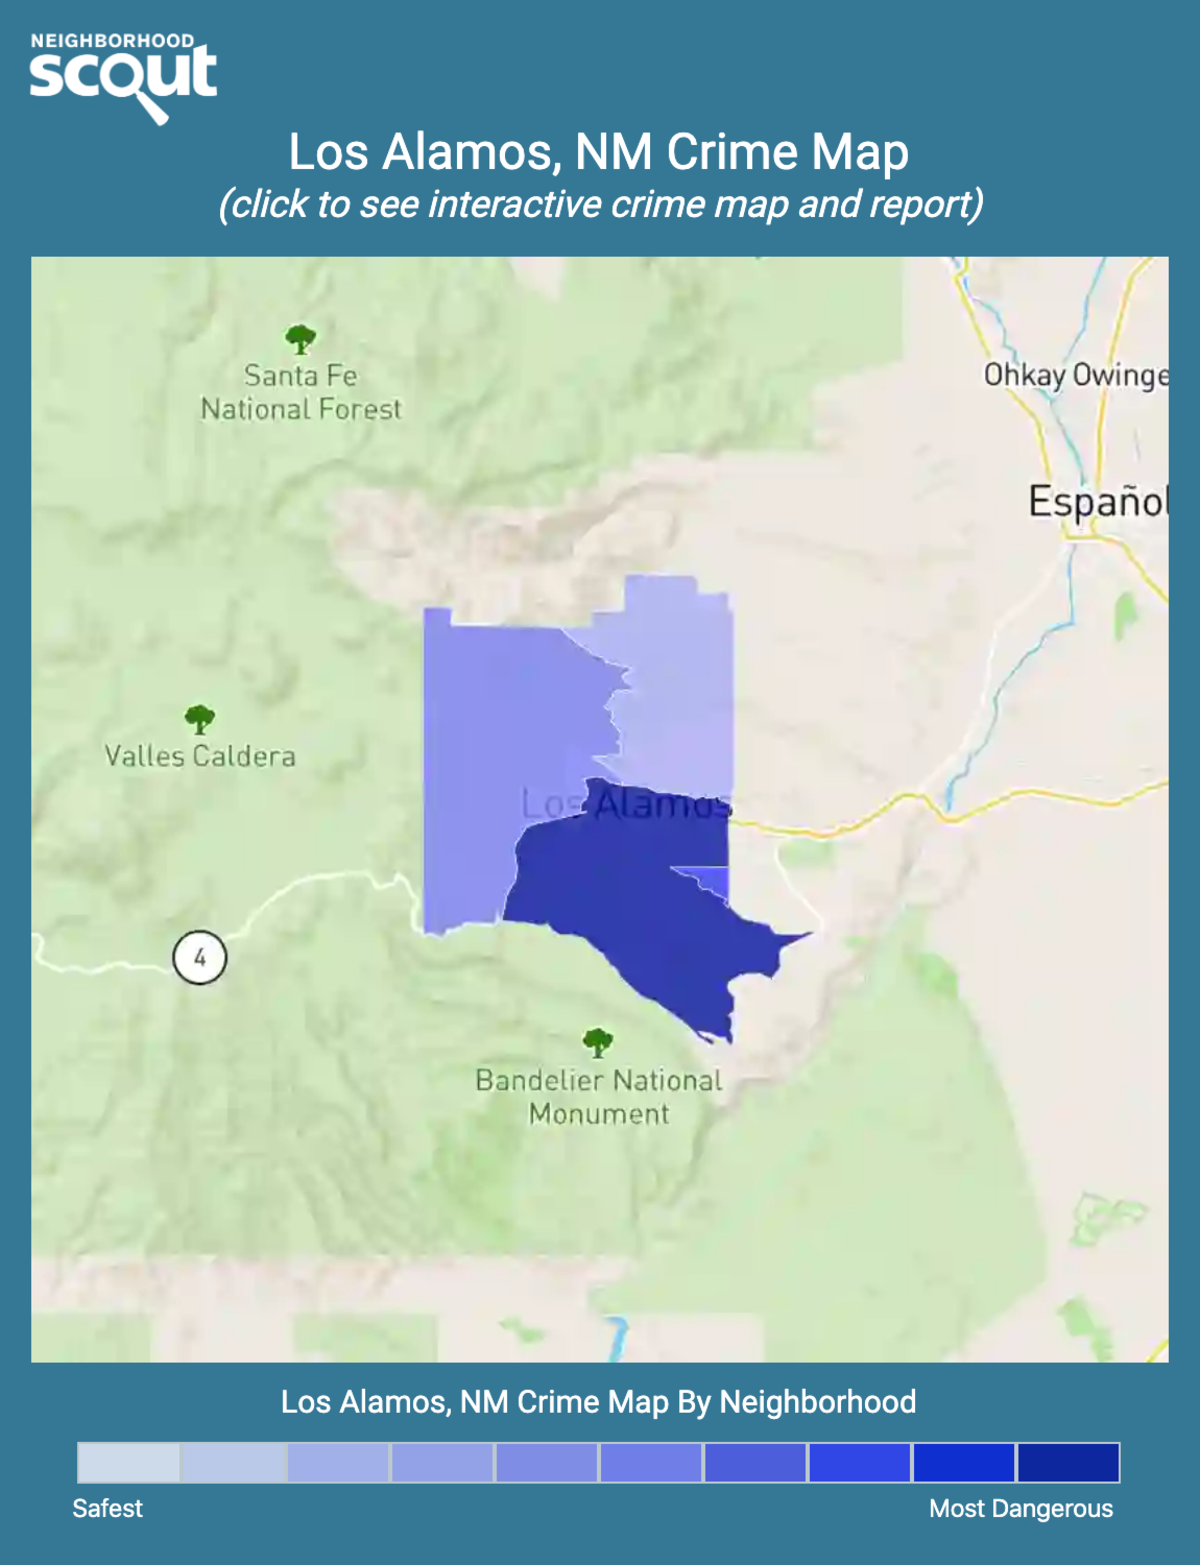 Los Alamos, New Mexico crime map